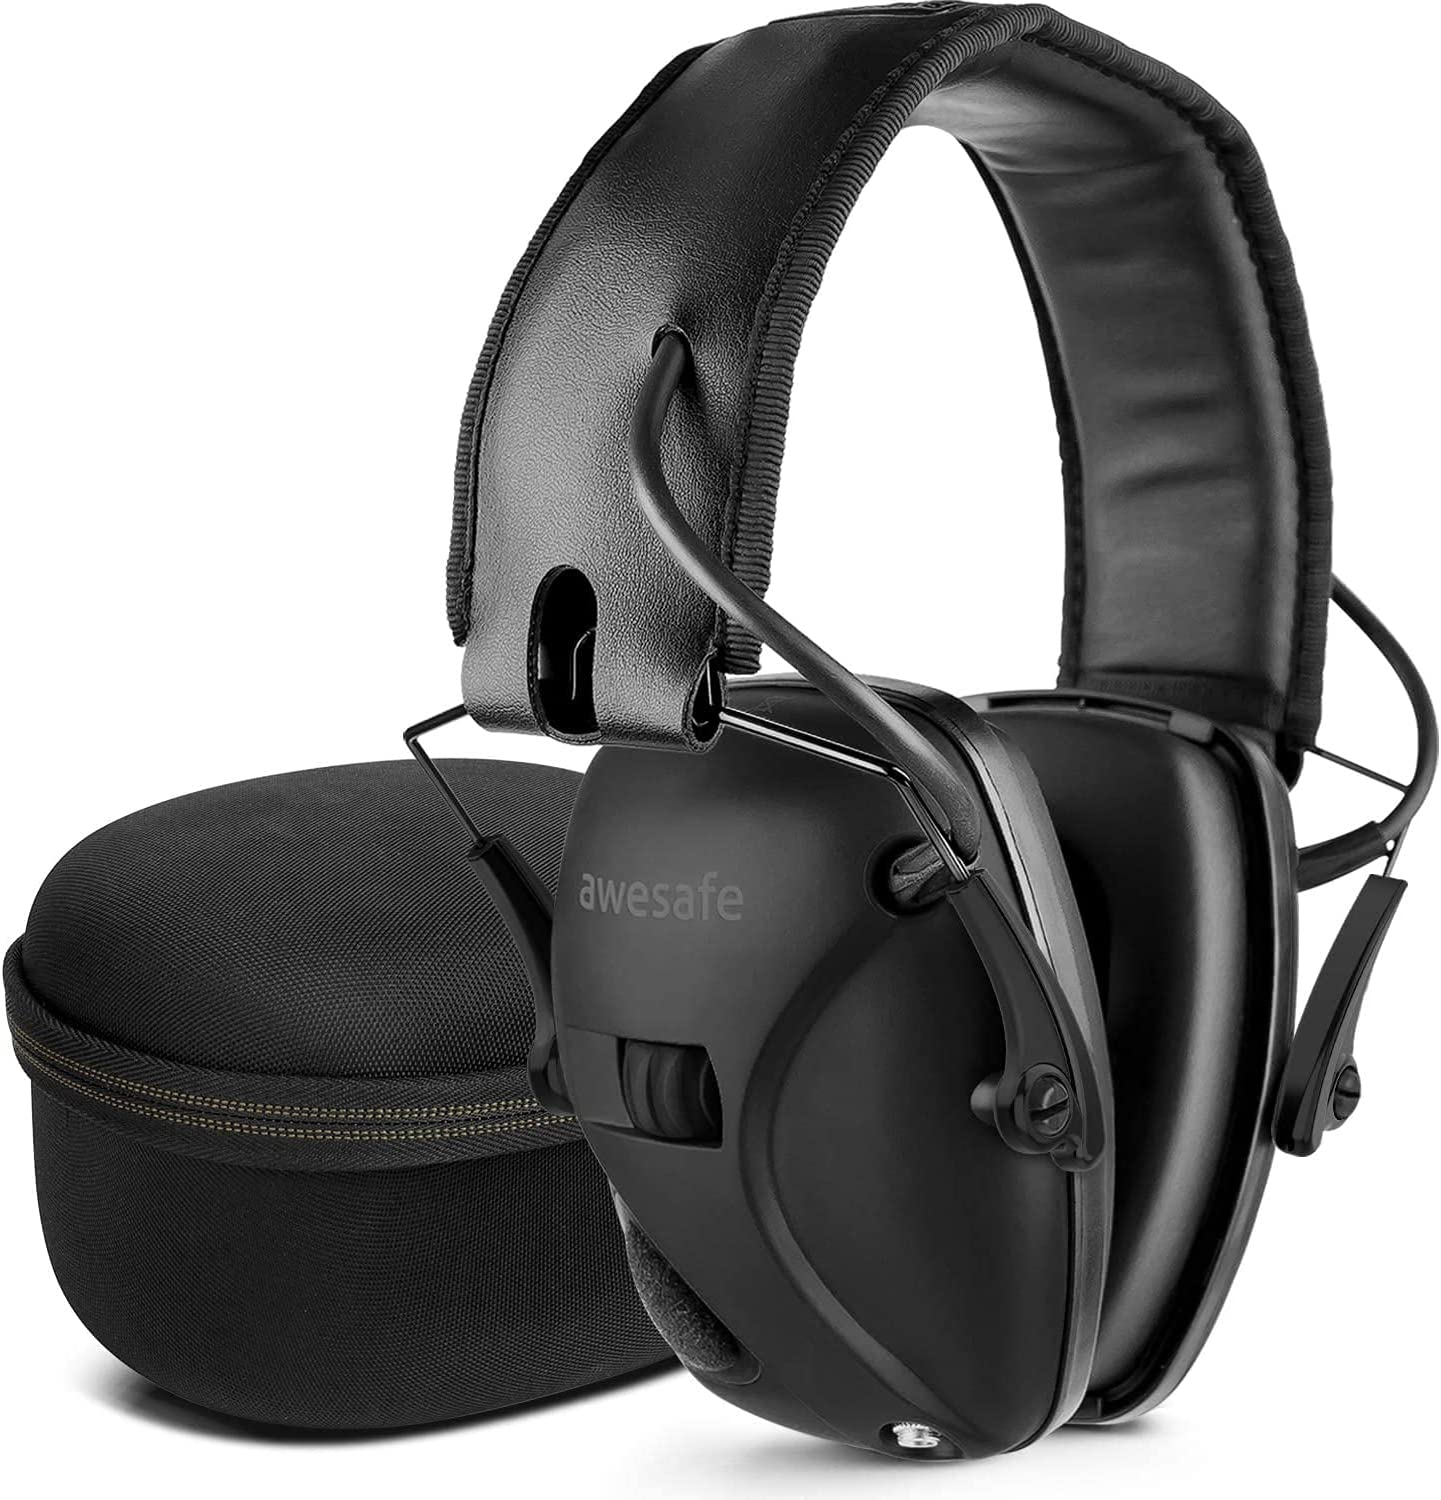 awesafe Electronic Limited time sale Shooting Earmuff Surprise price Protection Ear Hearing Safet